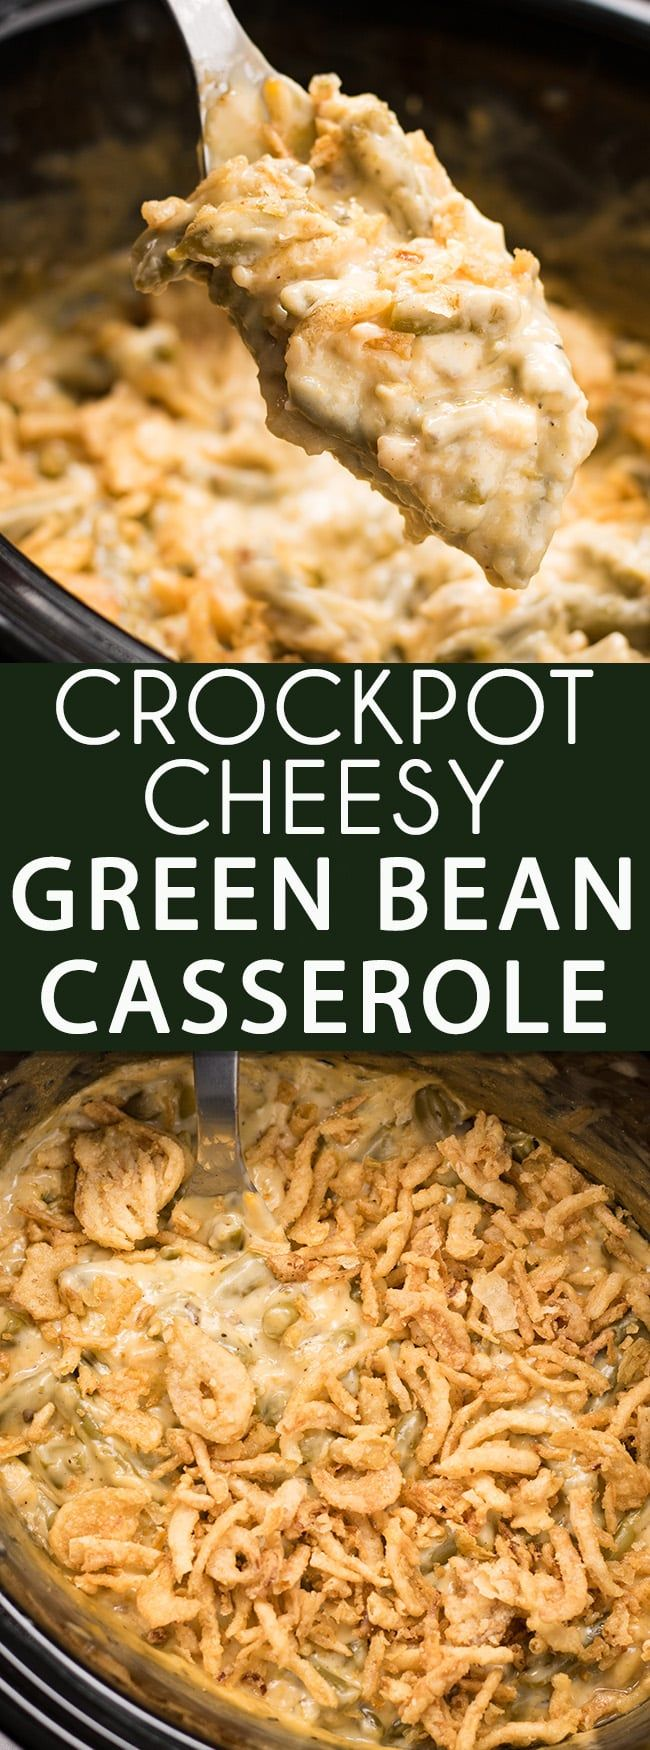 Cheesy Crockpot Green Bean Casserole - This green bean casserole recipe is everyone's favorite holiday side dish made even easier in the Crockpot!  Full of either fresh, frozen, or canned green beans, cream of mushroom soup, french fried onions and cheese this casserole is an easy crowd pleaser!